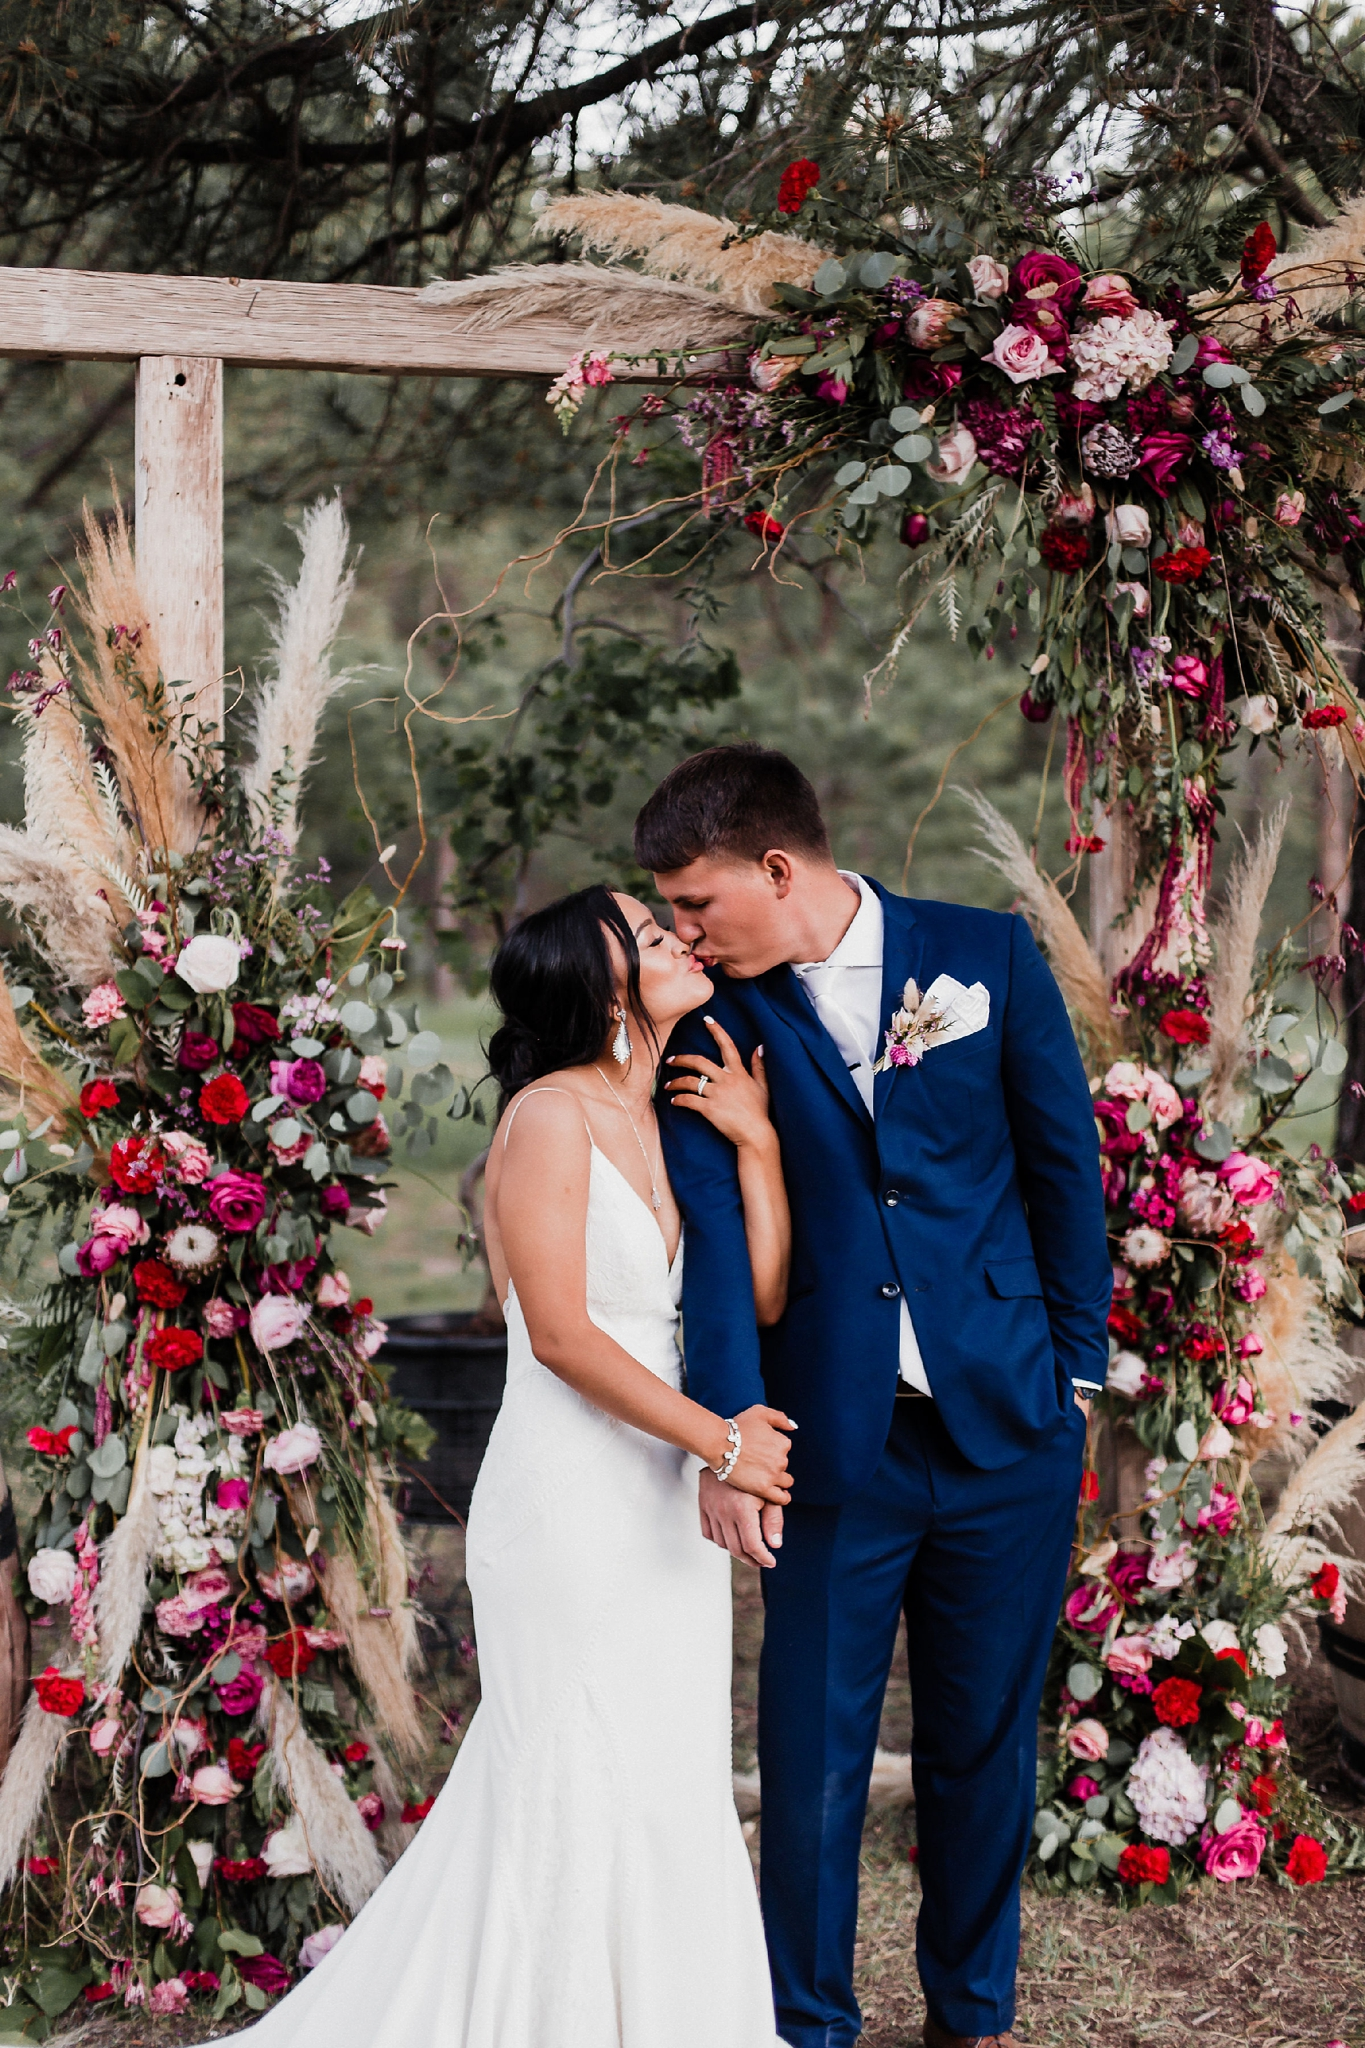 Alicia+lucia+photography+-+albuquerque+wedding+photographer+-+santa+fe+wedding+photography+-+new+mexico+wedding+photographer+-+new+mexico+wedding+-+summer+wedding+-+summer+wedding+florals+-+southwest+wedding_0001.jpg